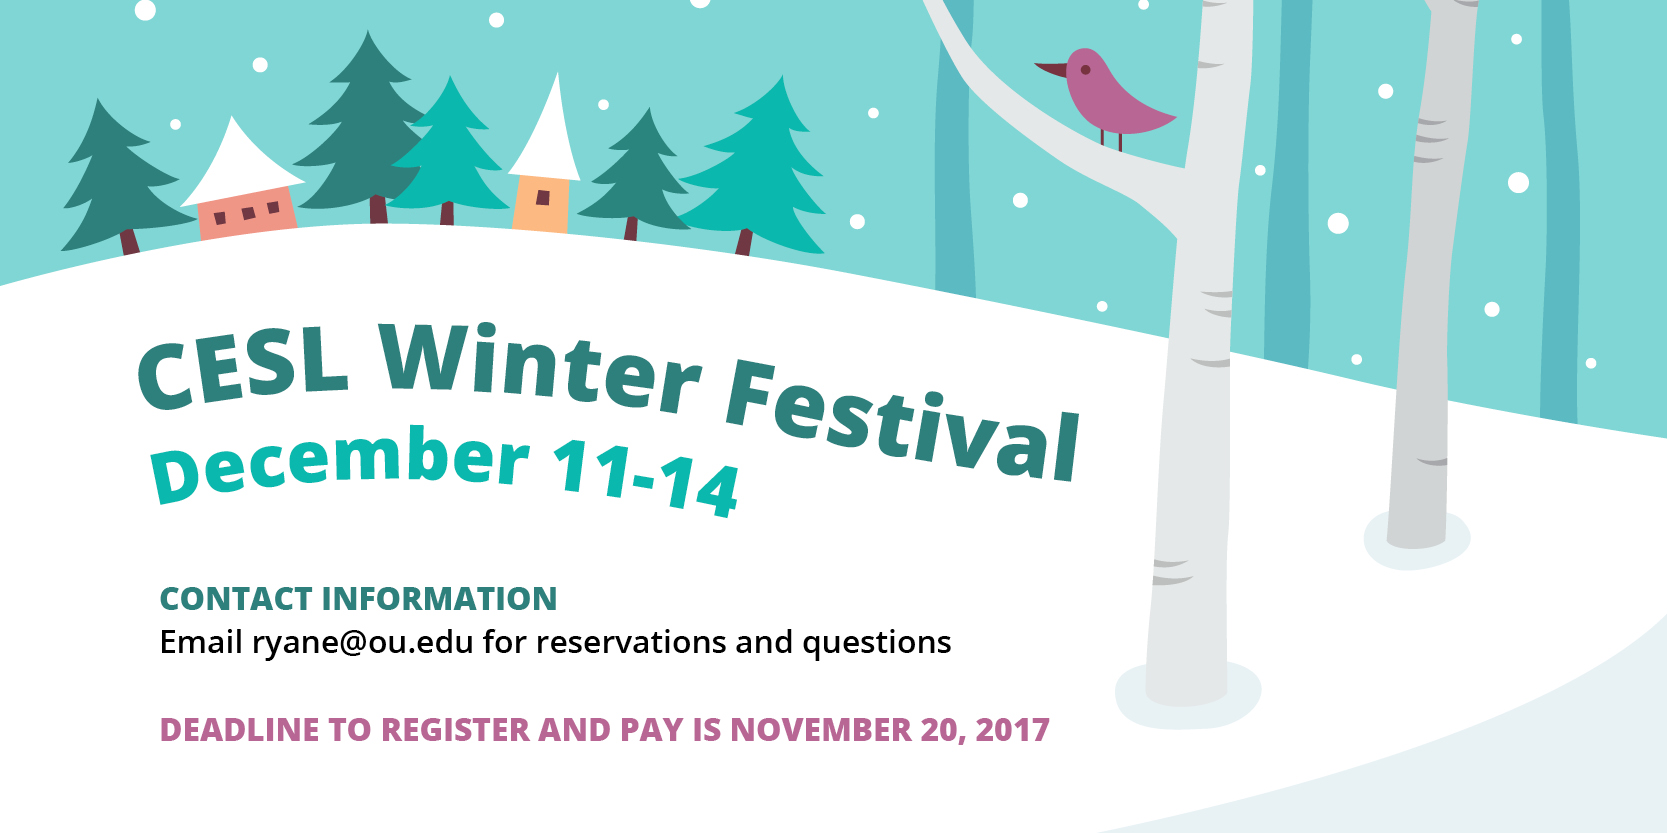 CELEBRATE WINTER WITH CESL